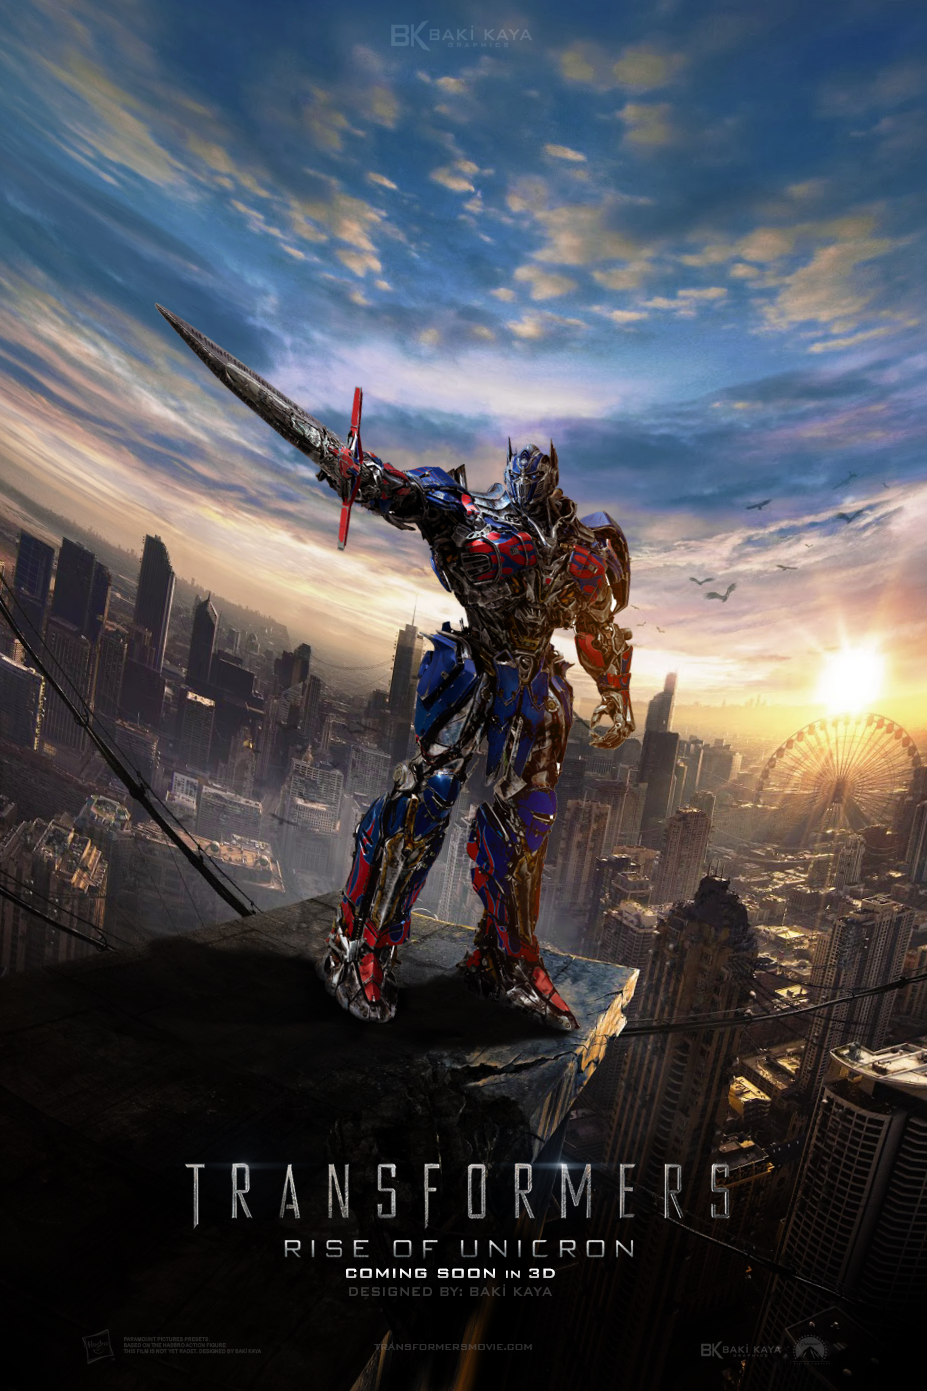 Transformers 5  Rise of Unicron  2016  Poster  2 by krallbakiTransformers 5 Poster